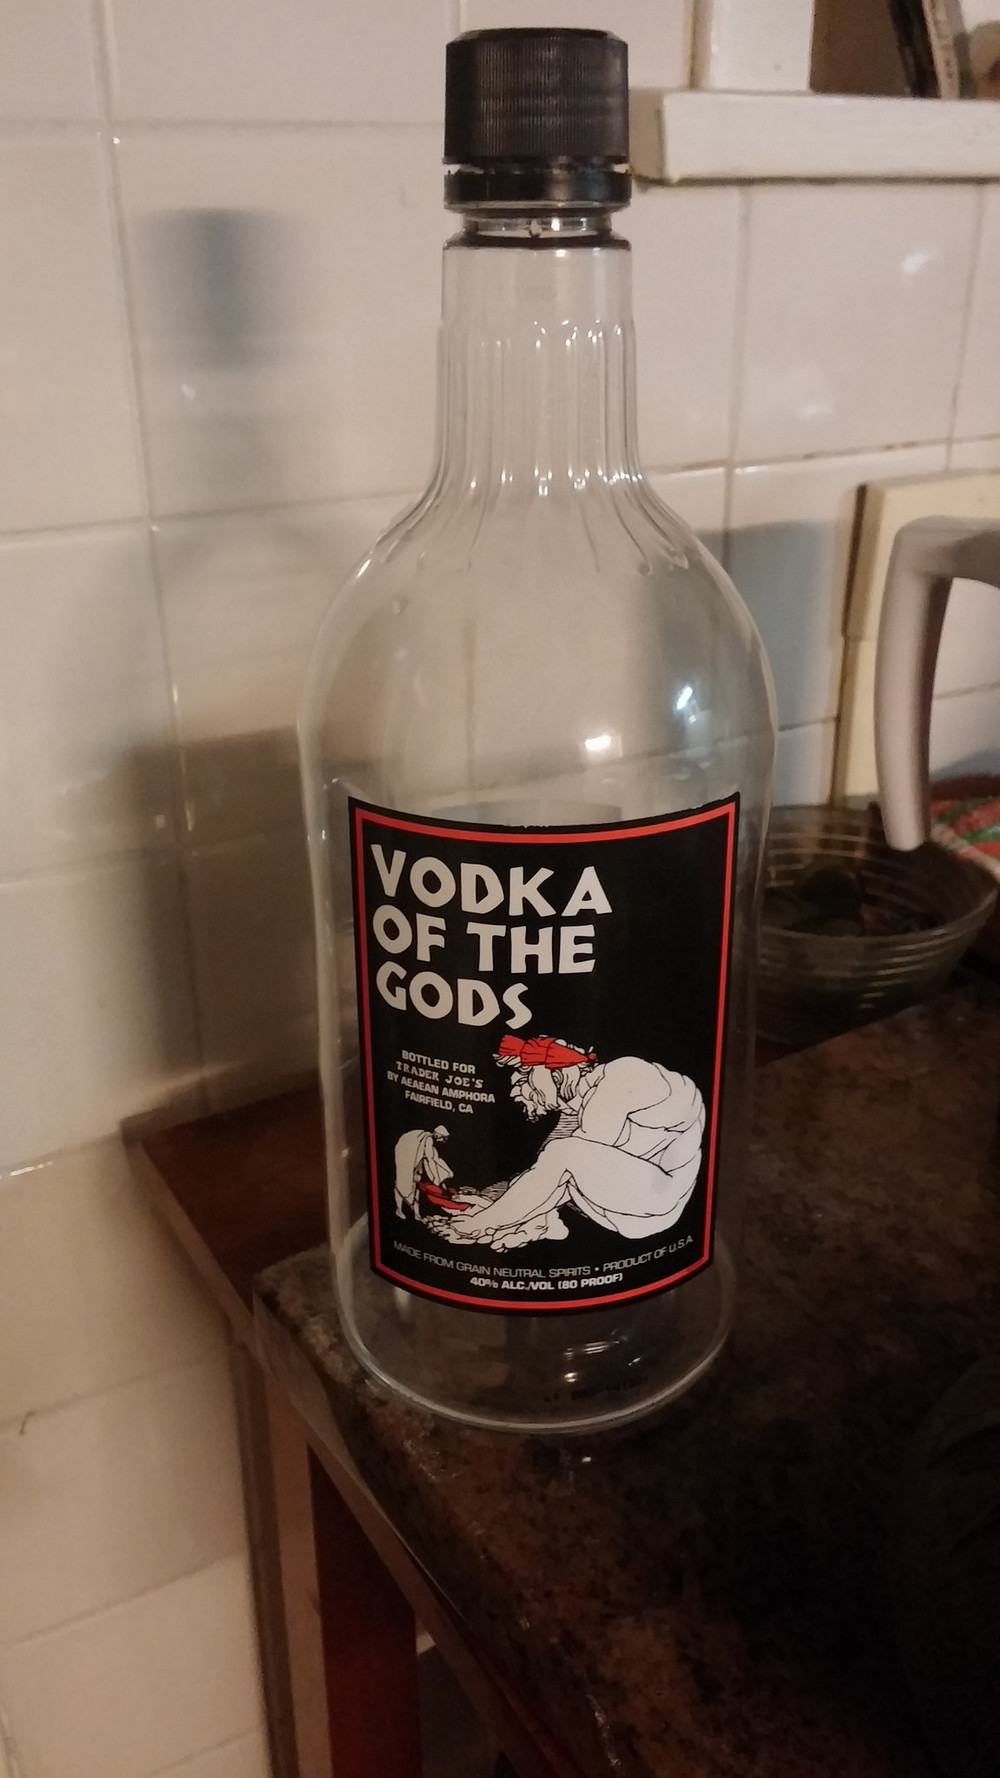 Vodka of the Gods - Much less expensive than beer. Also fewer calories. Not so interesting, however.